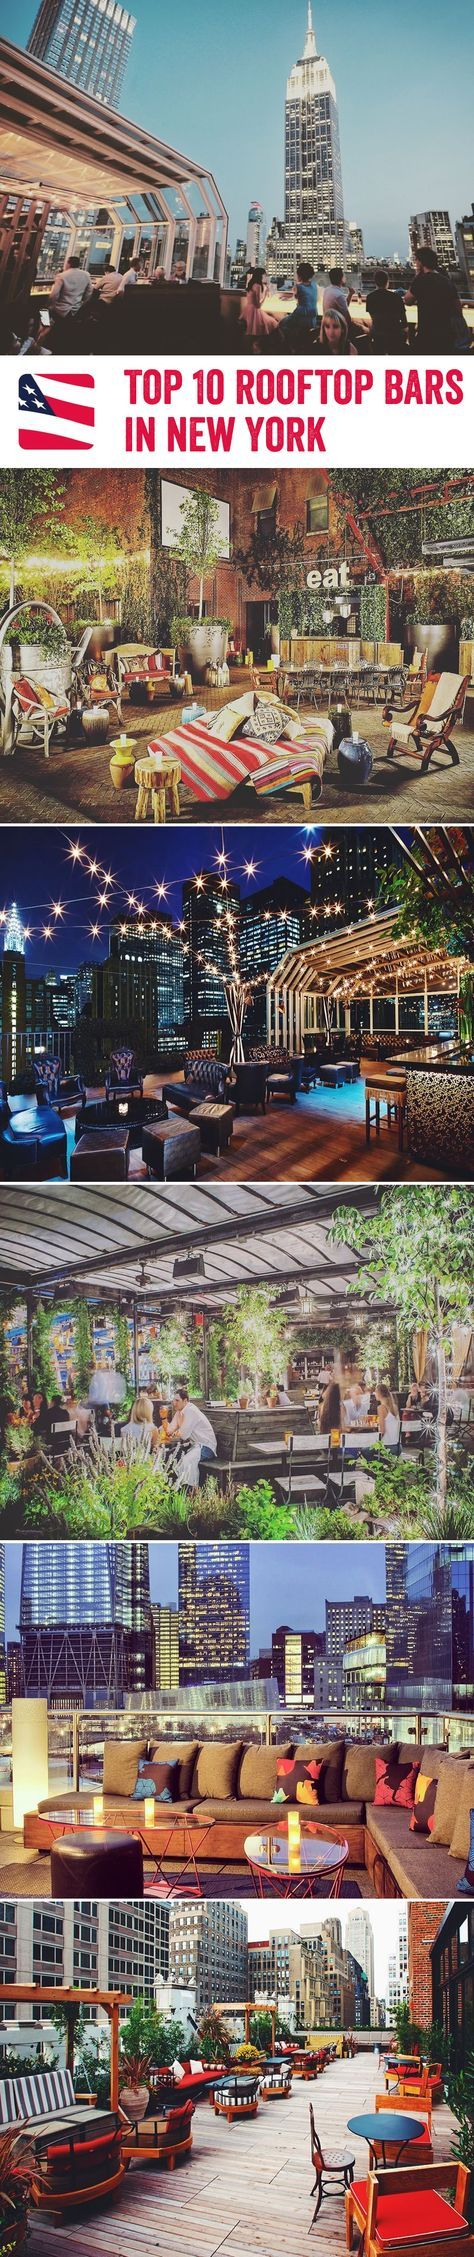 We've collated our favourite open-air bars in New York City, from the unique, to the classy http://tracking.publicidees.com/clic.php?progid=2184&partid=48172&dpl=http%3A%2F%2Fwww.promovacances.com%2Fvacances-sejour-hotel%2Fvoyage-hotel-new-york%2Fgrandes-villes-cote-est-etats-unis%2F